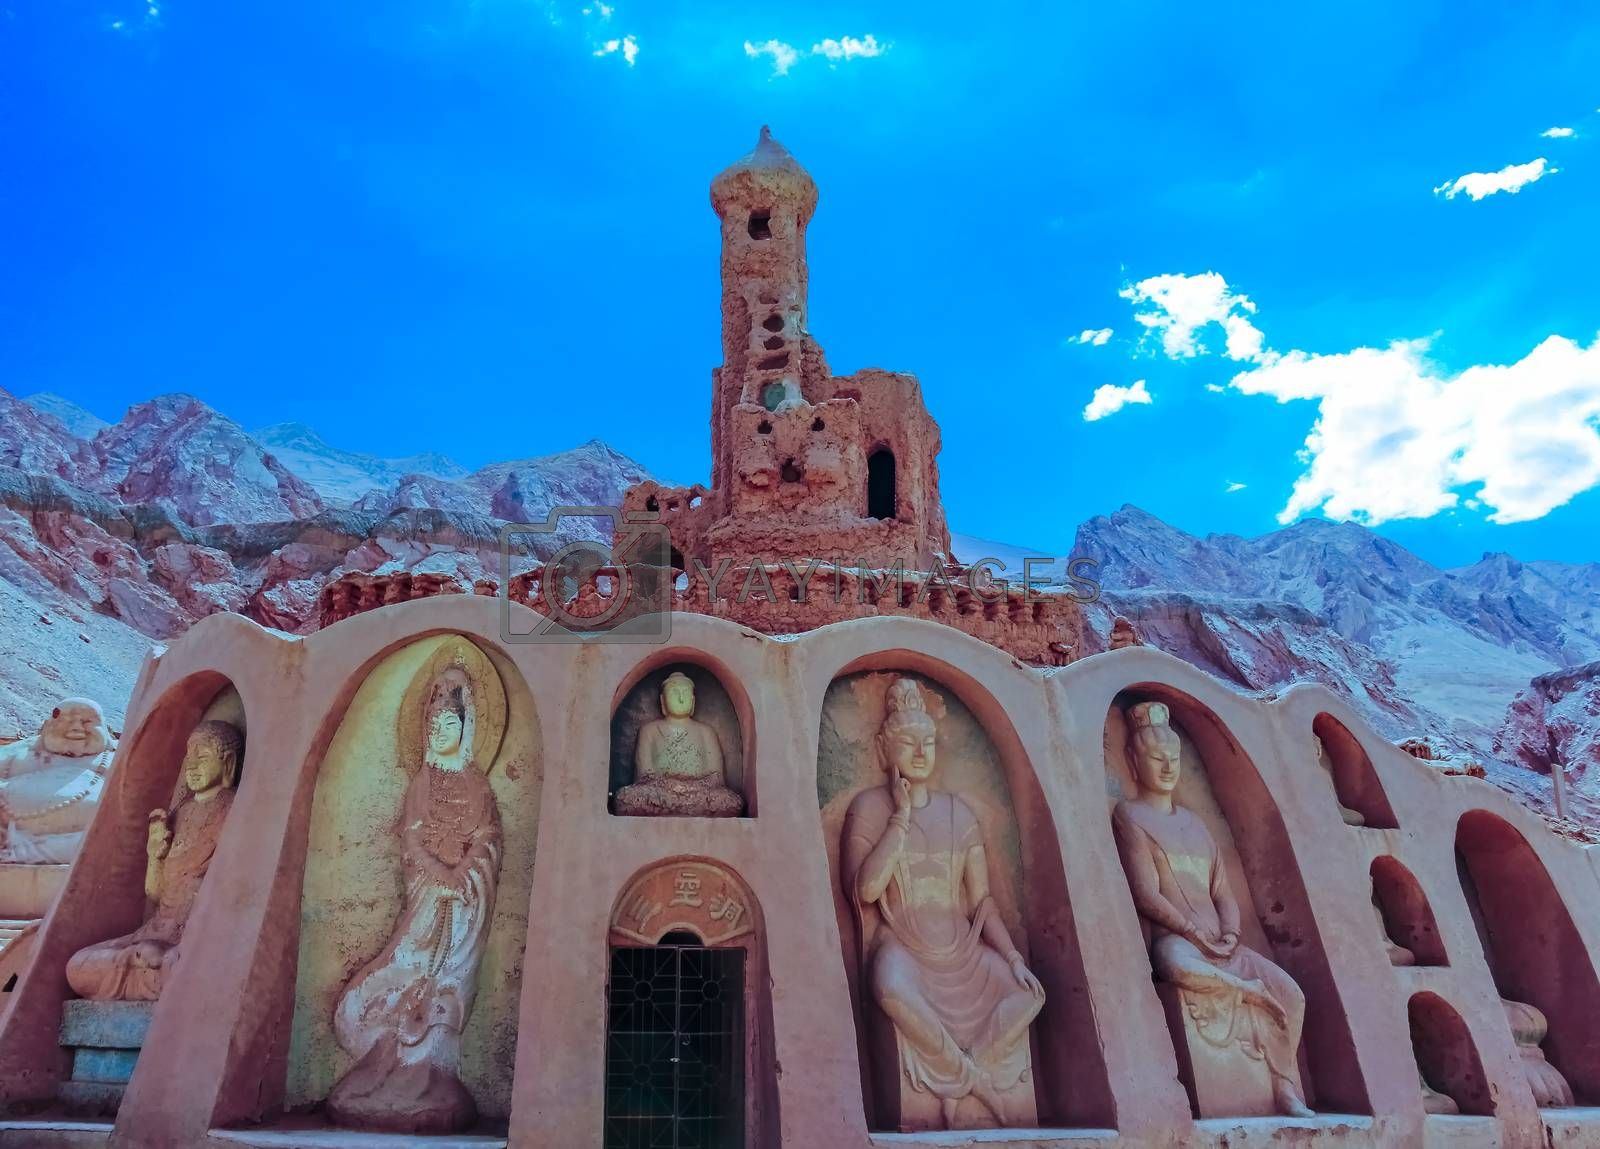 The facade of the Desert Soil Art Museum at the Flaming Mountains